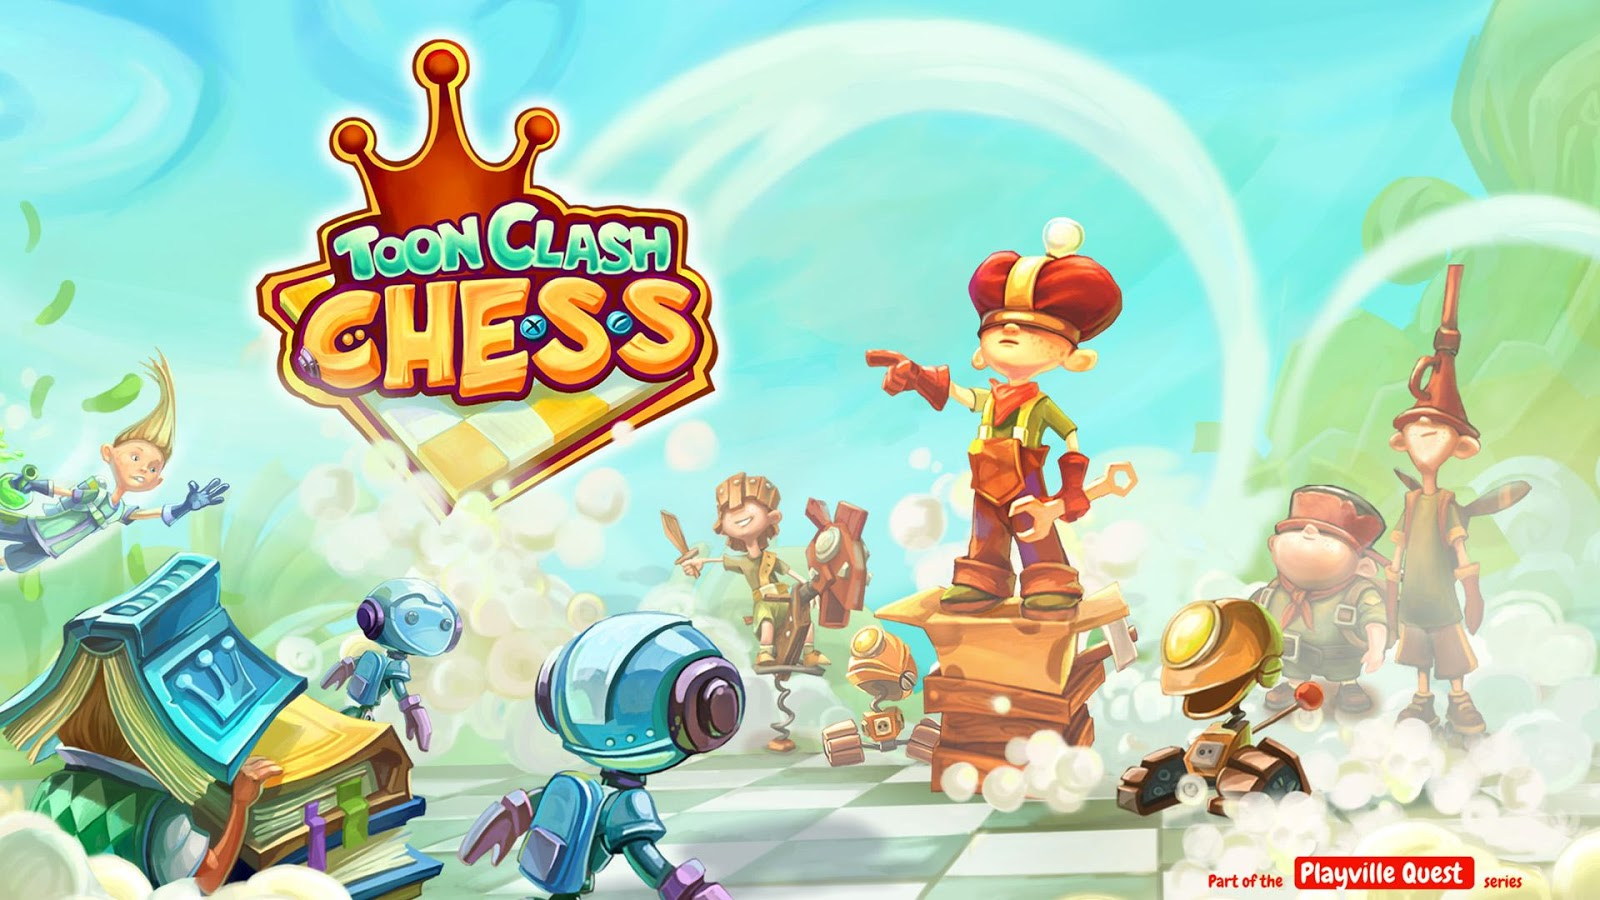 Тoon Clash Chess Screenshot 8